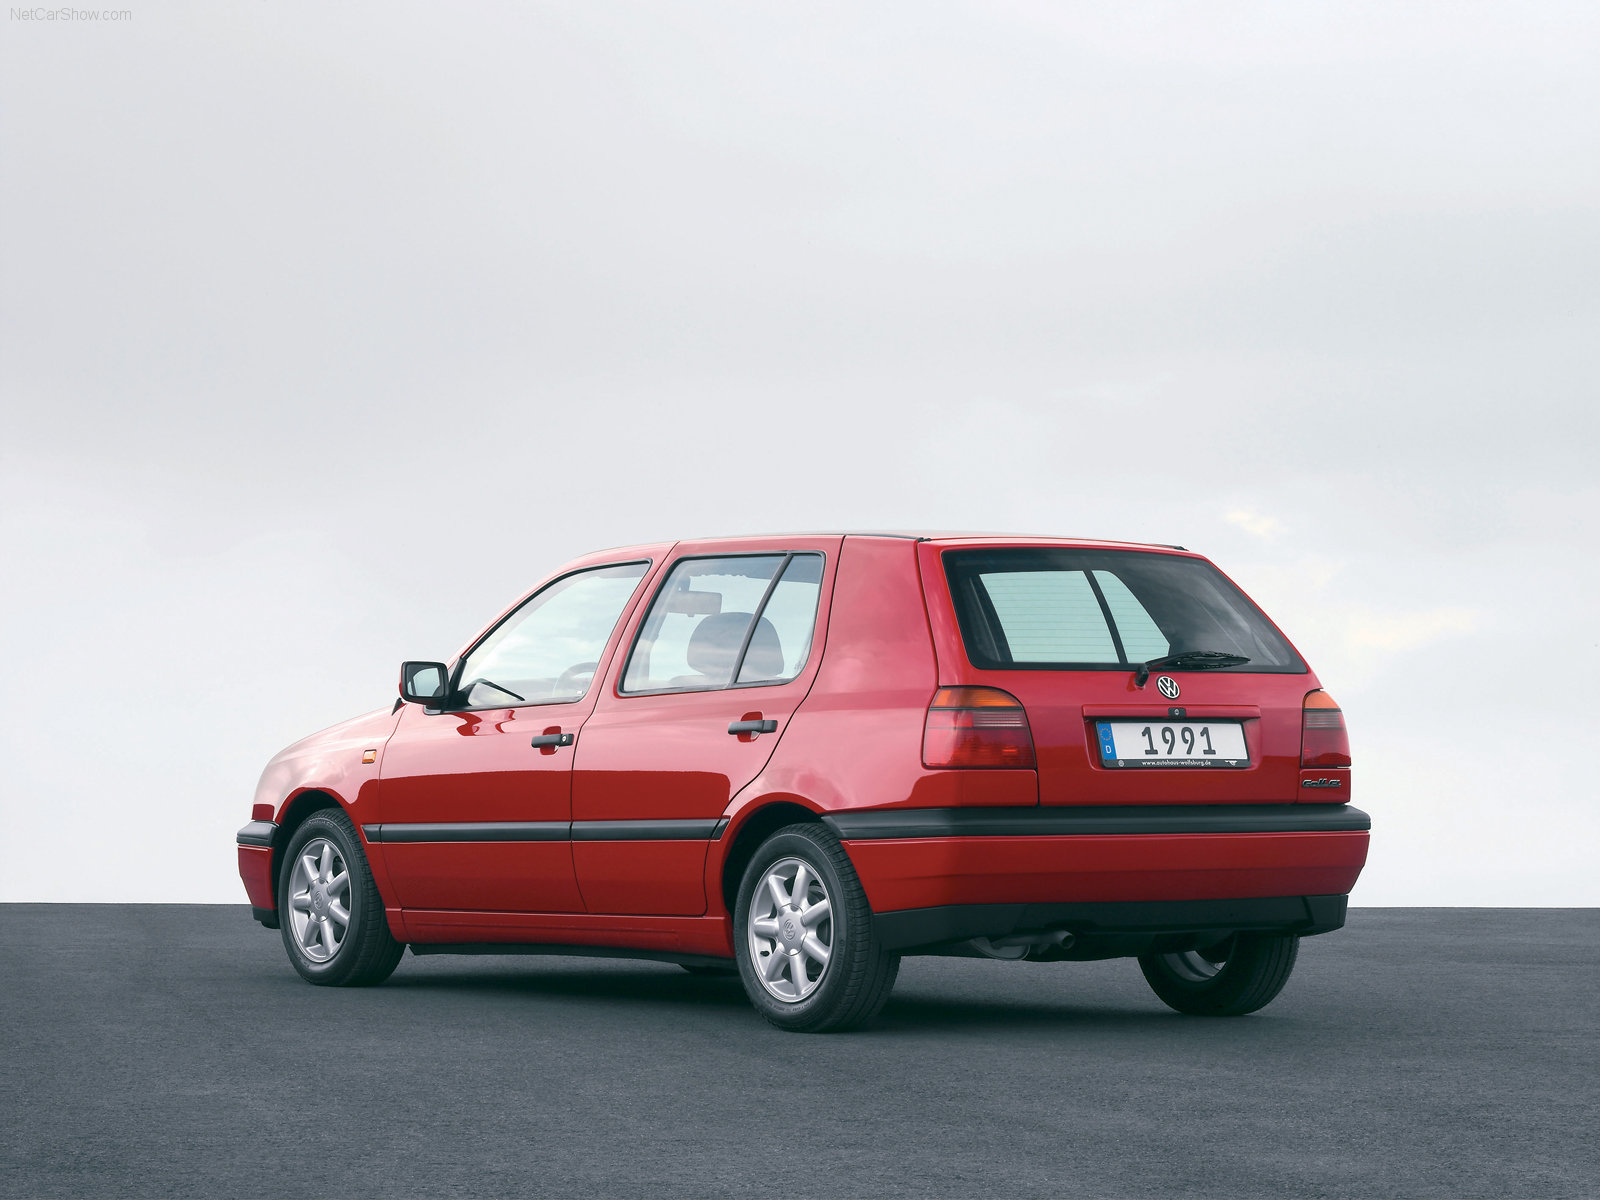 Volkswagen Golf III photos - PhotoGallery with 11 pics| CarsBase.com